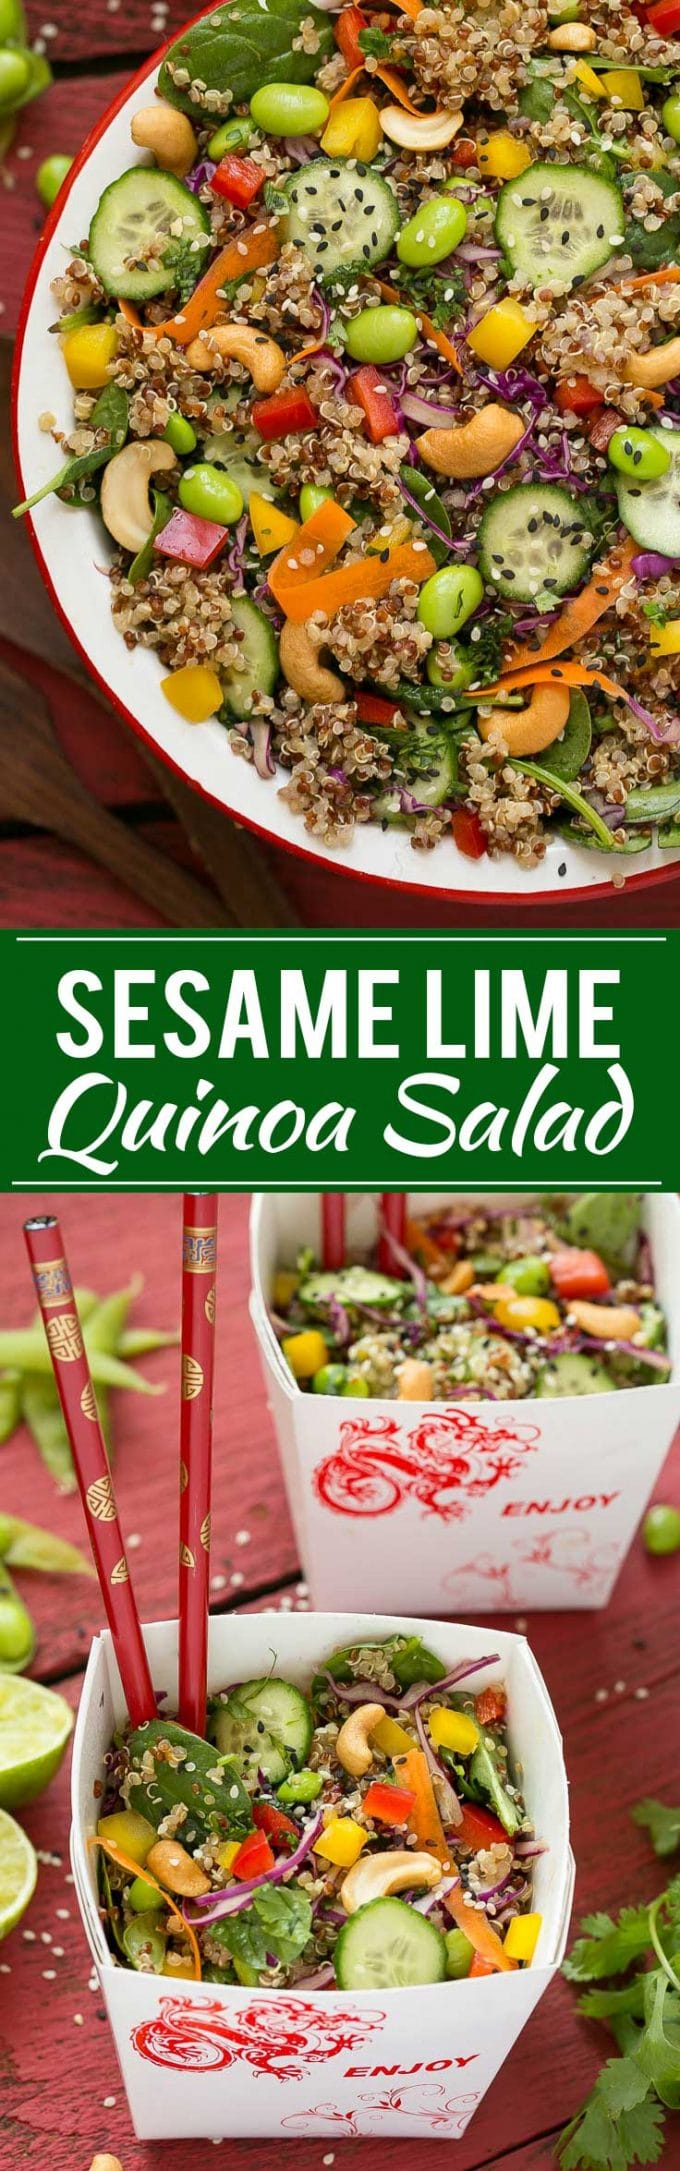 This sesame lime quinoa salad is packed with protein and can be made ahead of time, making it a perfect side dish or lunch option. Ad